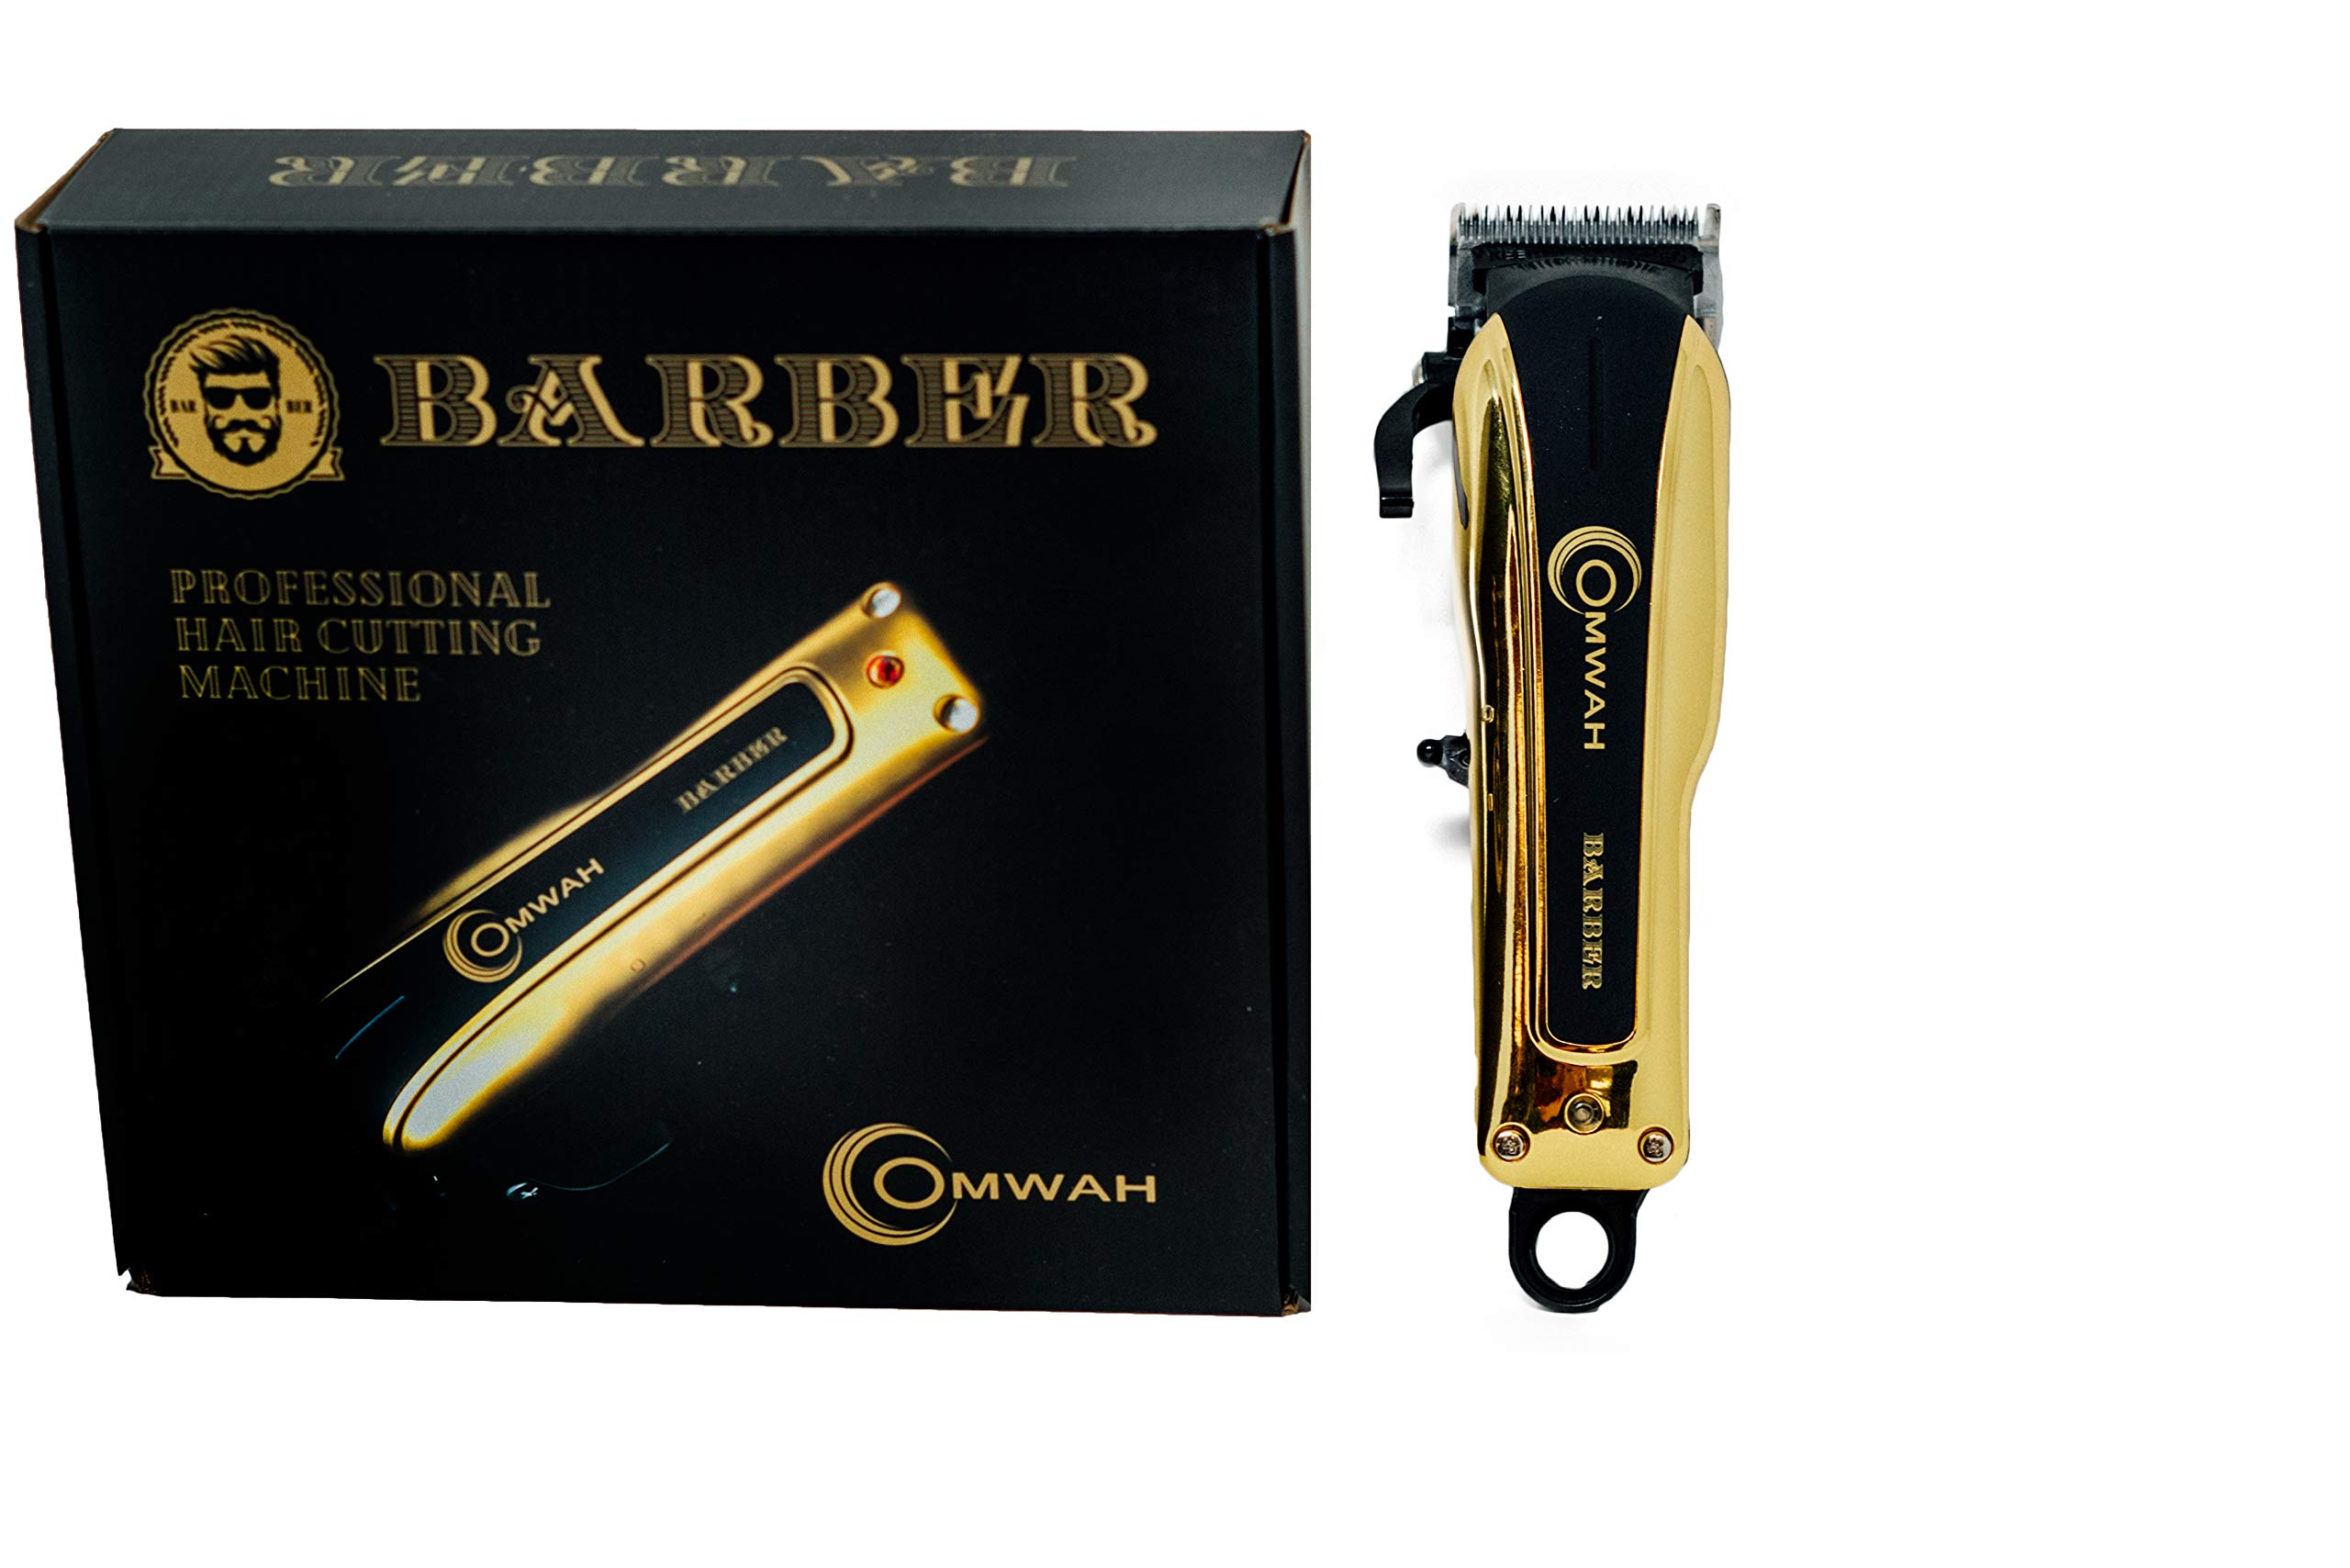 Omwah Professional High Performance Cordless Barber Hair Clipper Haircut Kit with 5 Magnetic Combs